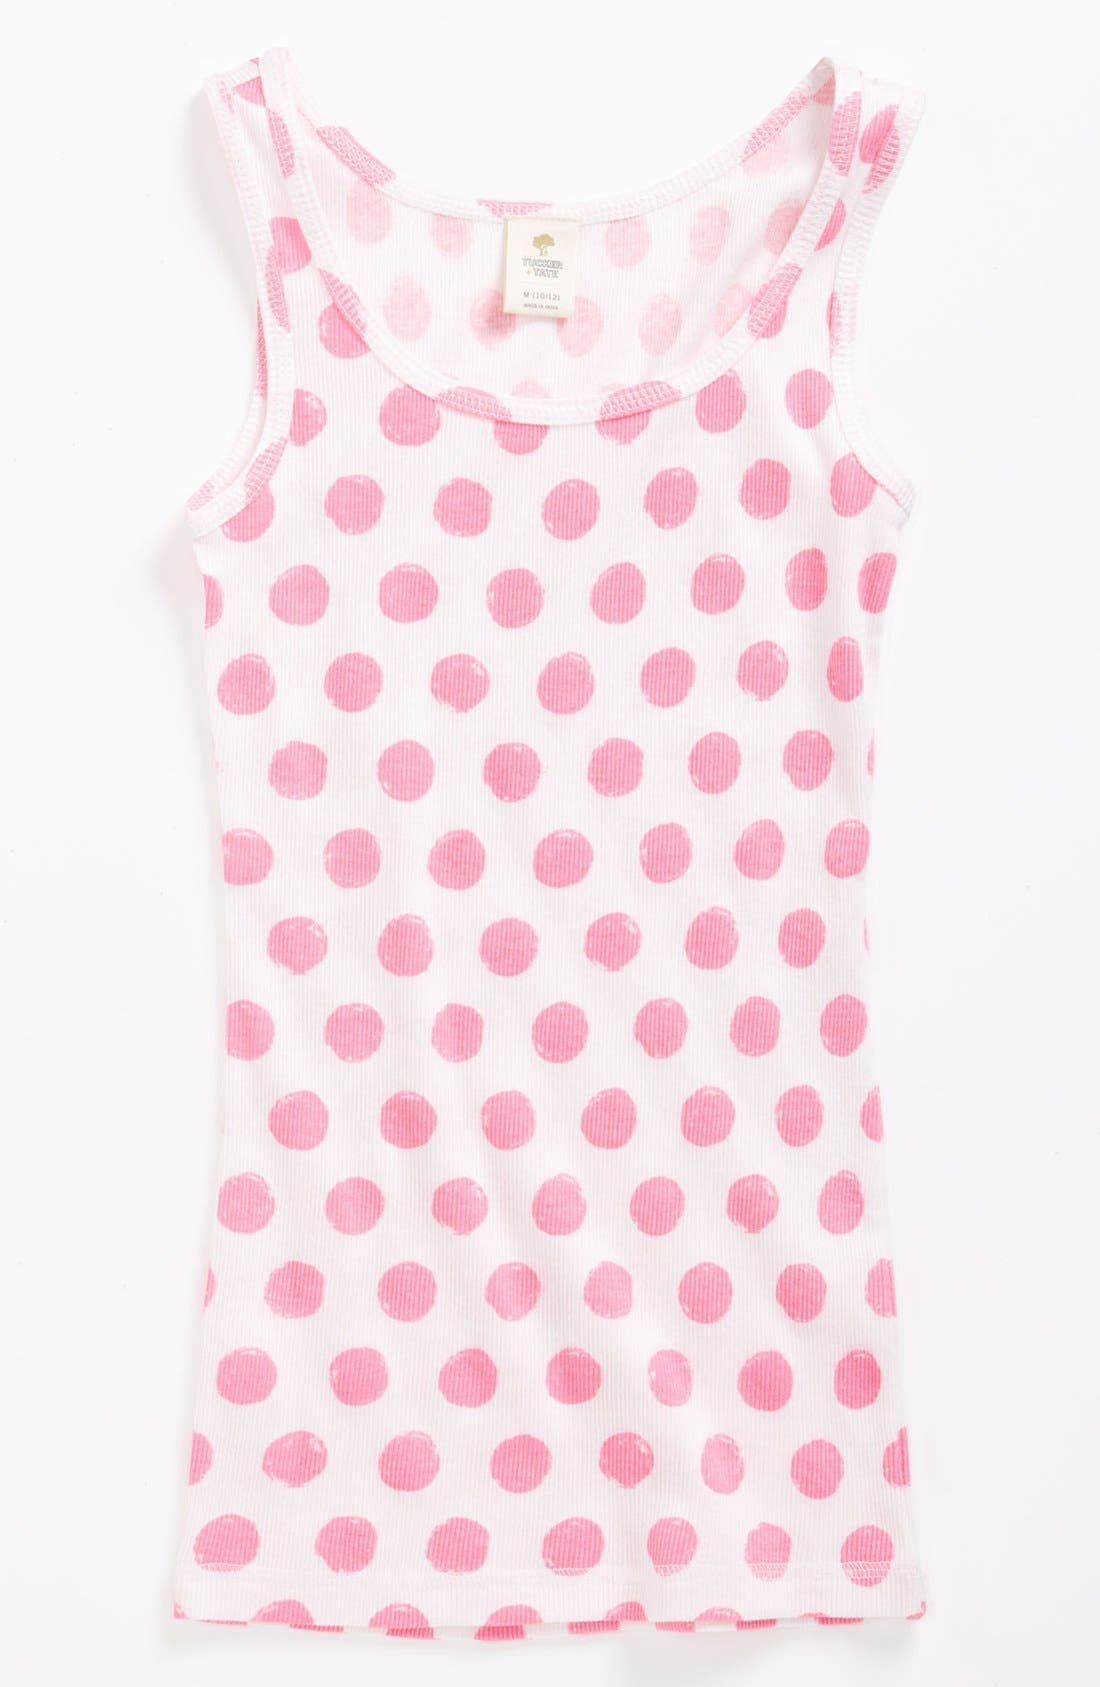 Alternate Image 1 Selected - Tucker + Tate 'Mandy' Print Tank Top (Little Girls)